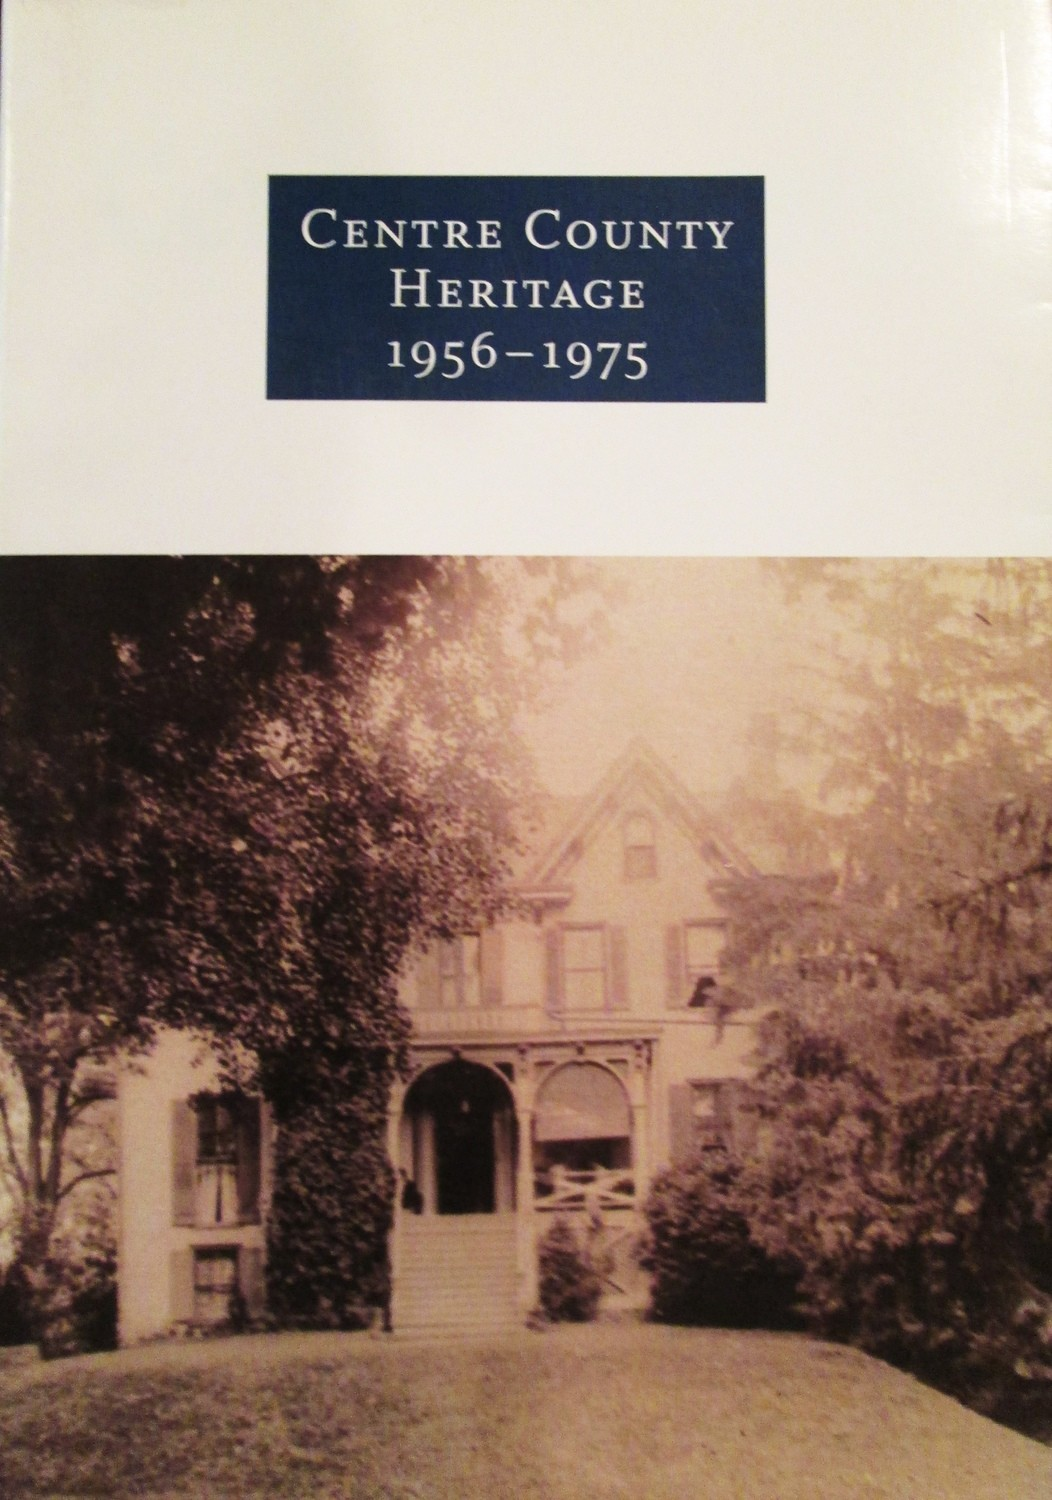 Centre County Heritage 1956-1975